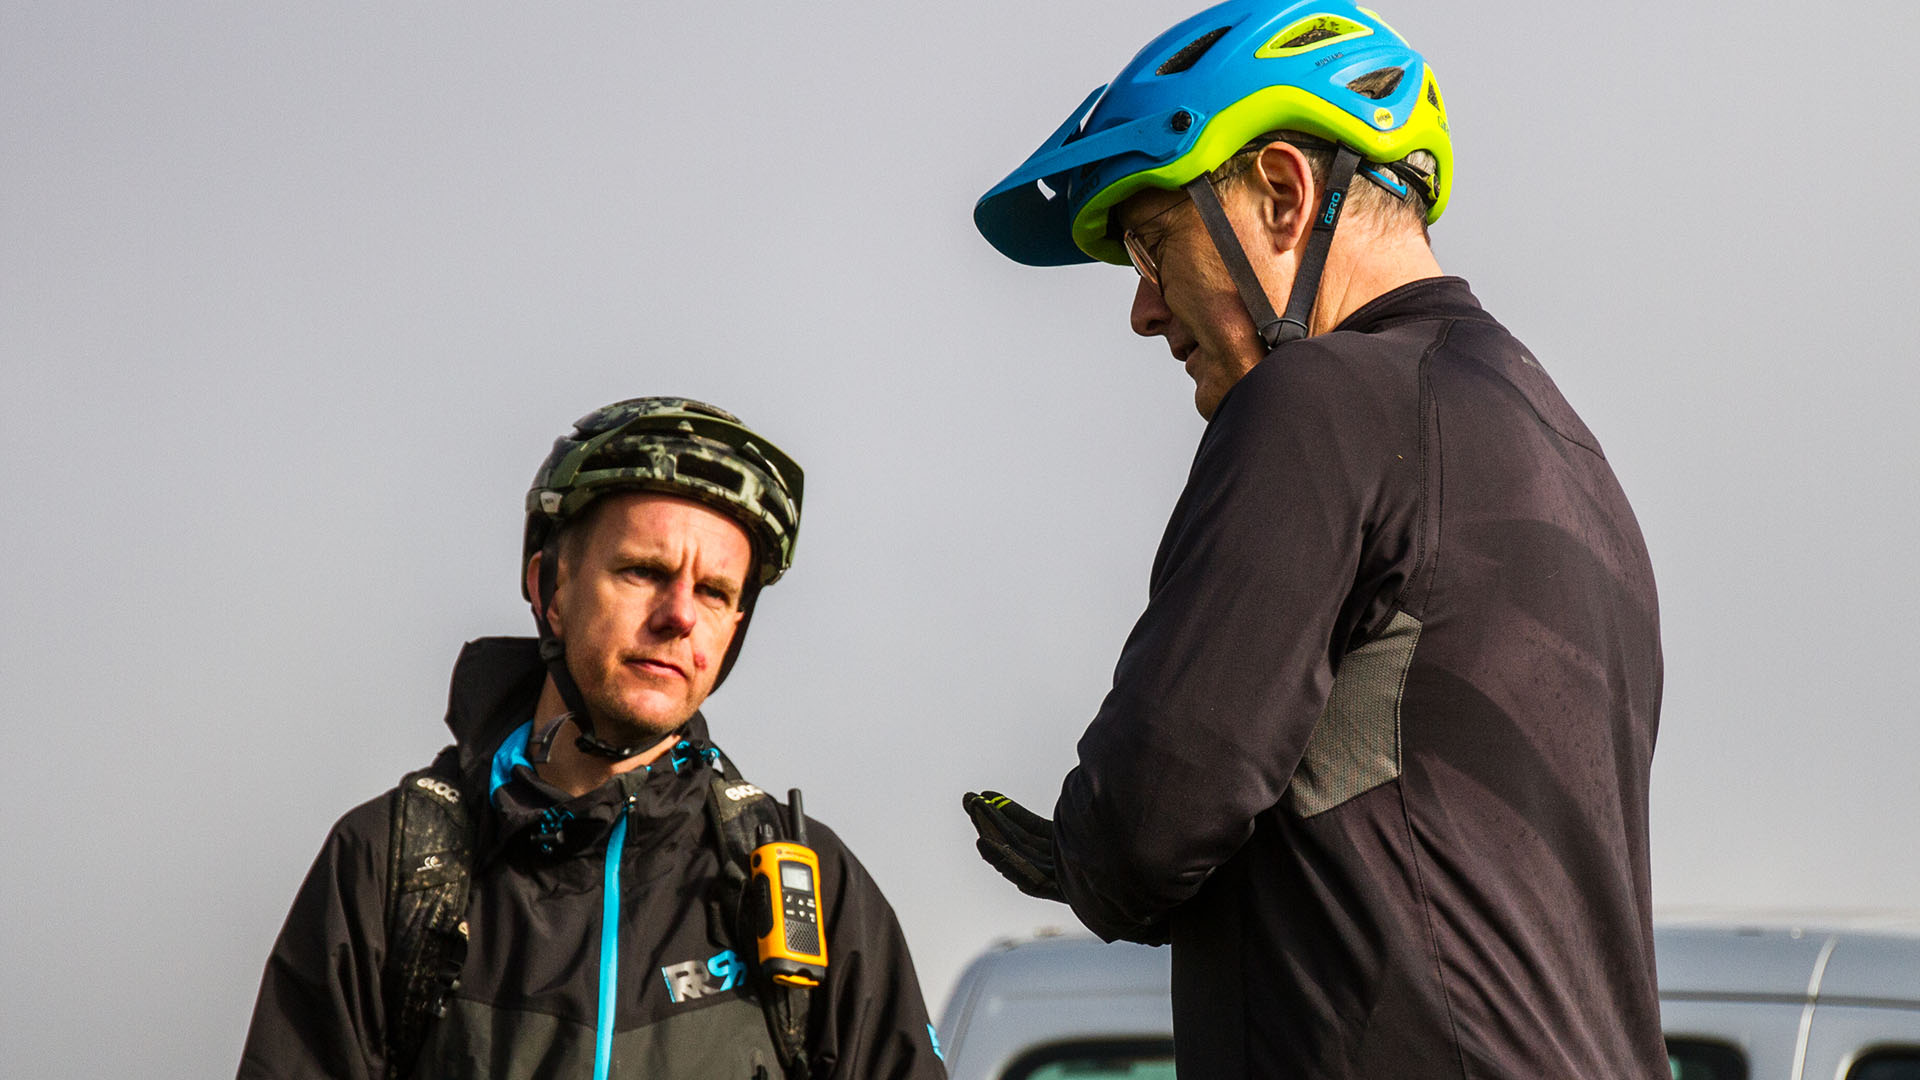 +3 MTB Coach Sandy Plenty talks setup with a rider during one of our events on the Long Mynd in Shropshire